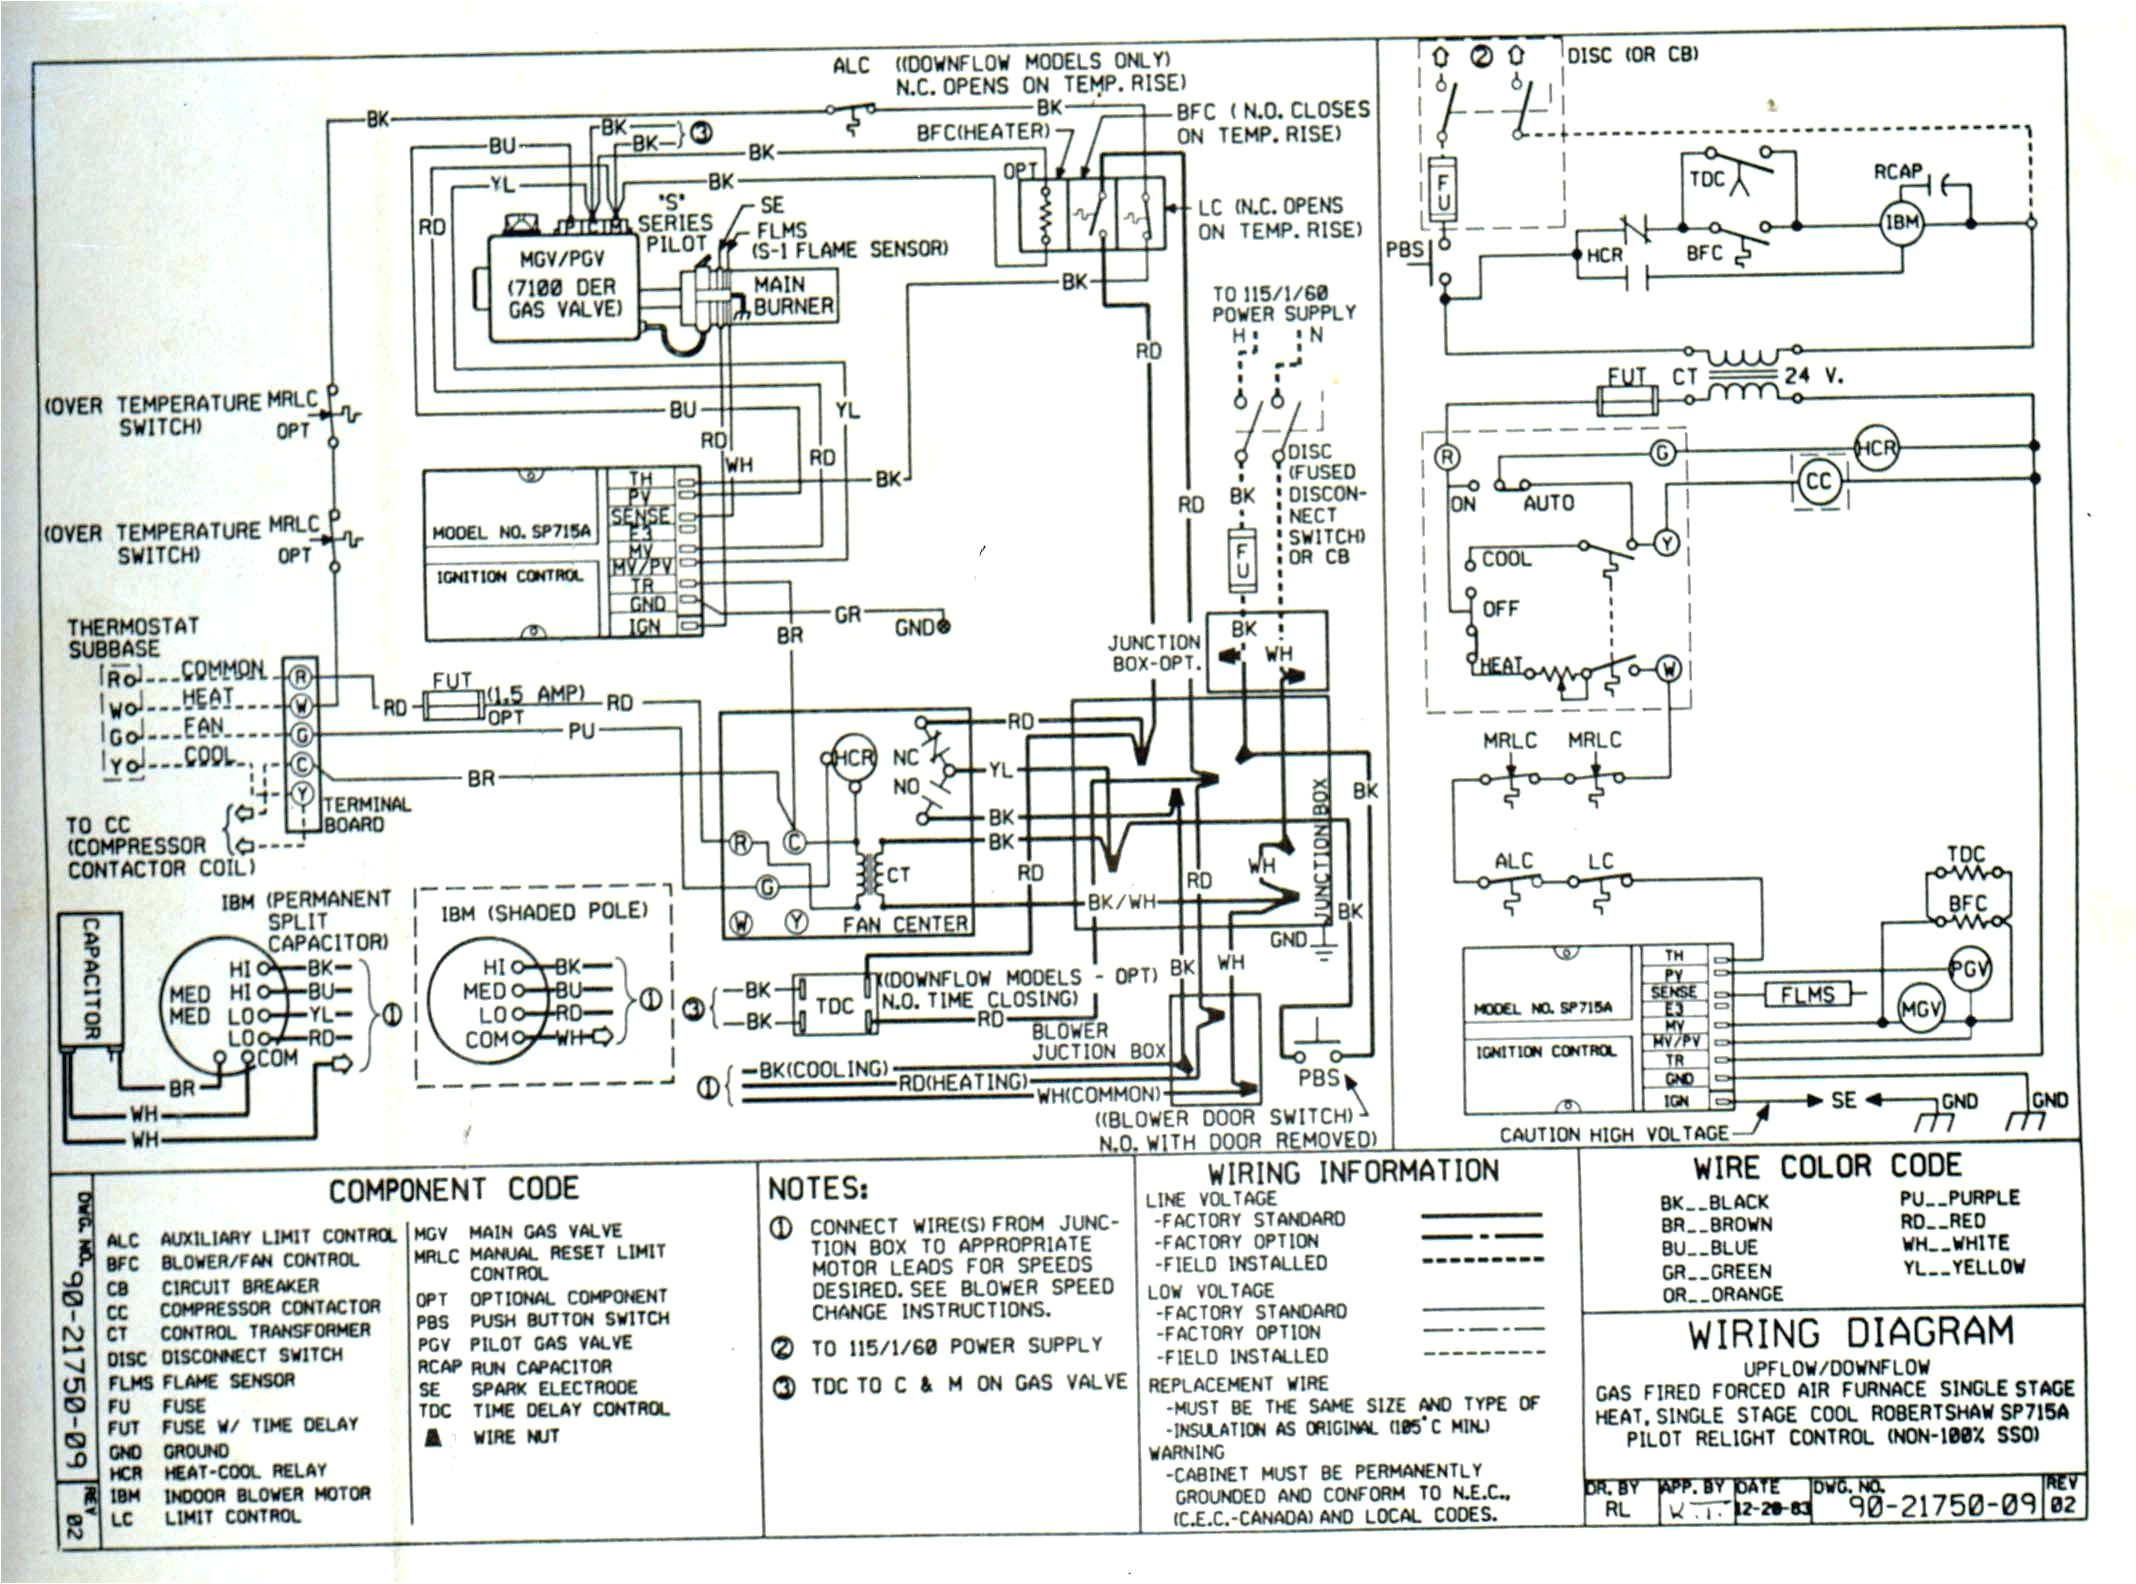 trane wiring diagrams 2307 5588 wiring diagram user trane wiring diagrams 2307 5588